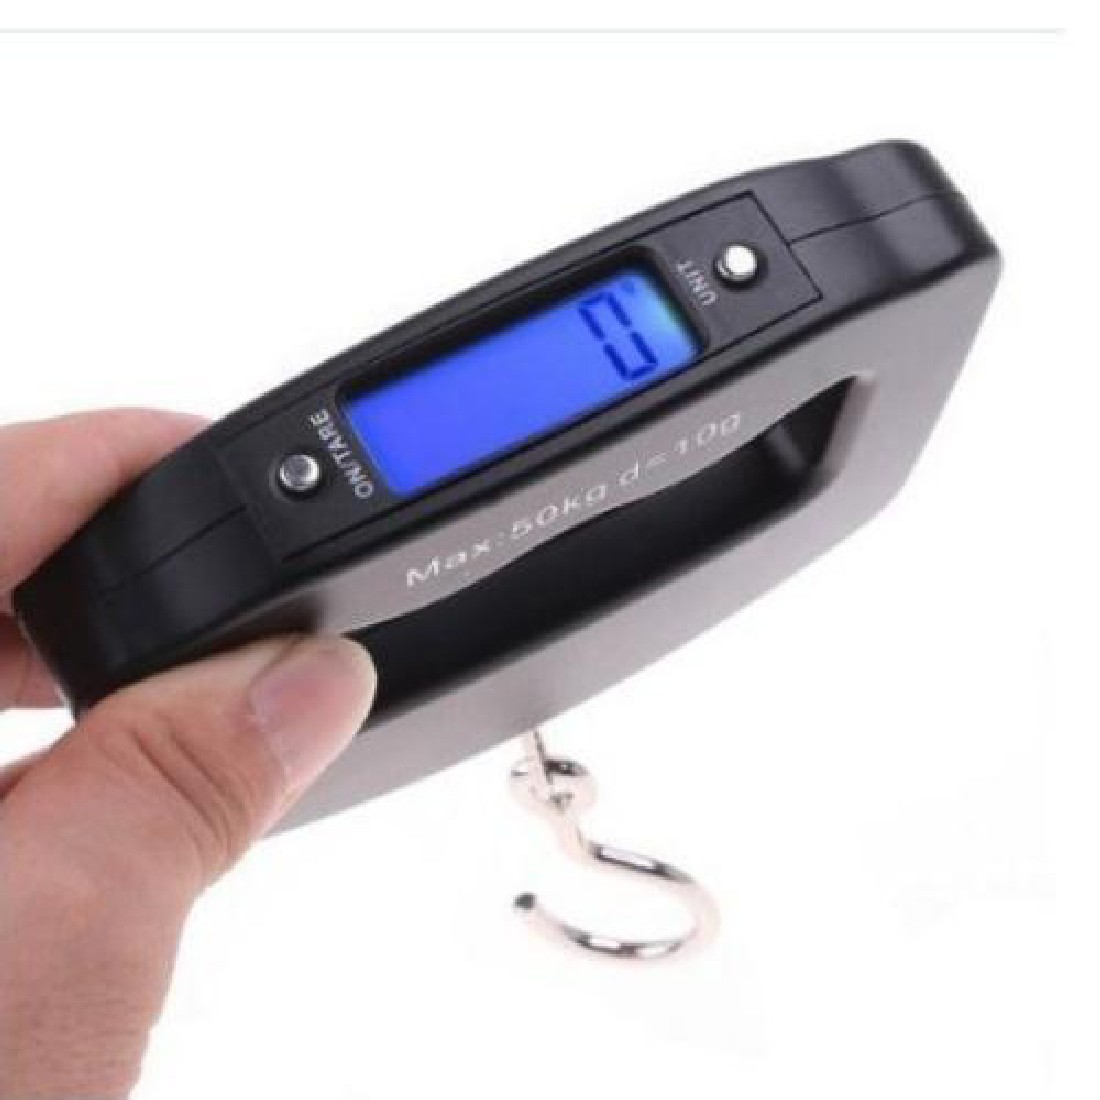 Mini Hand Held Plastic 50kg/10g LCD Digital Fishing Hanging Electronic Scale Pocket Hook Weight Luggage ScaleMini Hand Held Plastic 50kg/10g LCD Digital Fishing Hanging Electronic Scale Pocket Hook Weight Luggage Scale